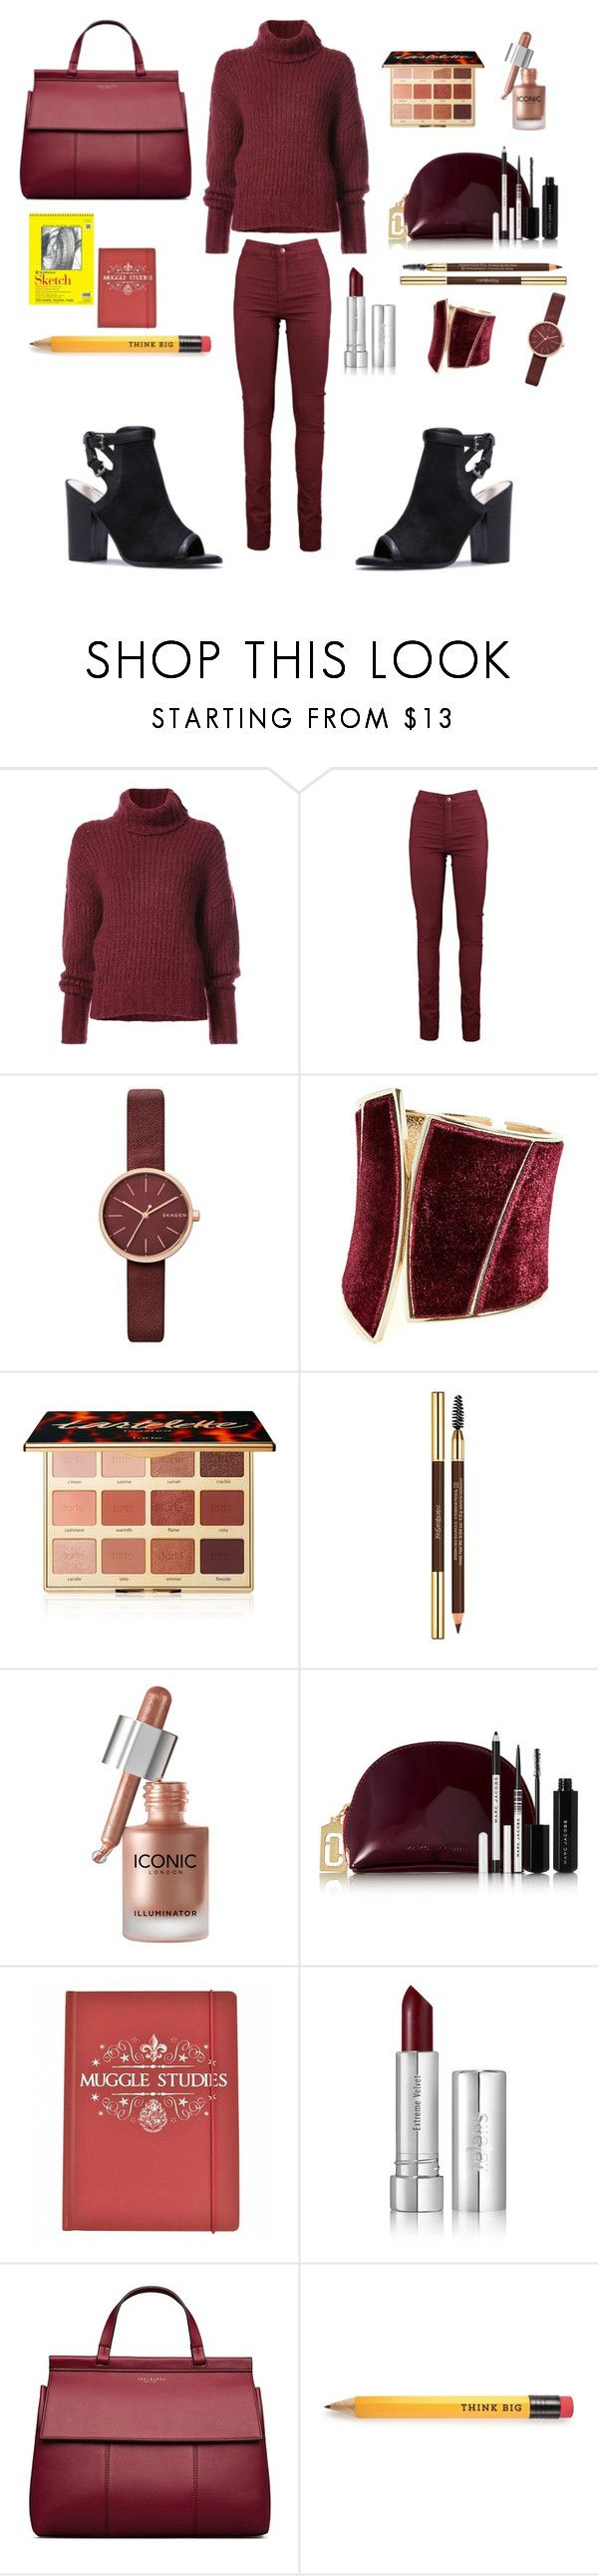 """""""Study 📖 hard chic"""" by jackie-hoot ❤ liked on Polyvore featuring BY. Bonnie Young, Nayeli, Skagen, GUESS by Marciano, tarte, Yves Saint Laurent, Marc Jacobs, Zelens and Tory Burch"""